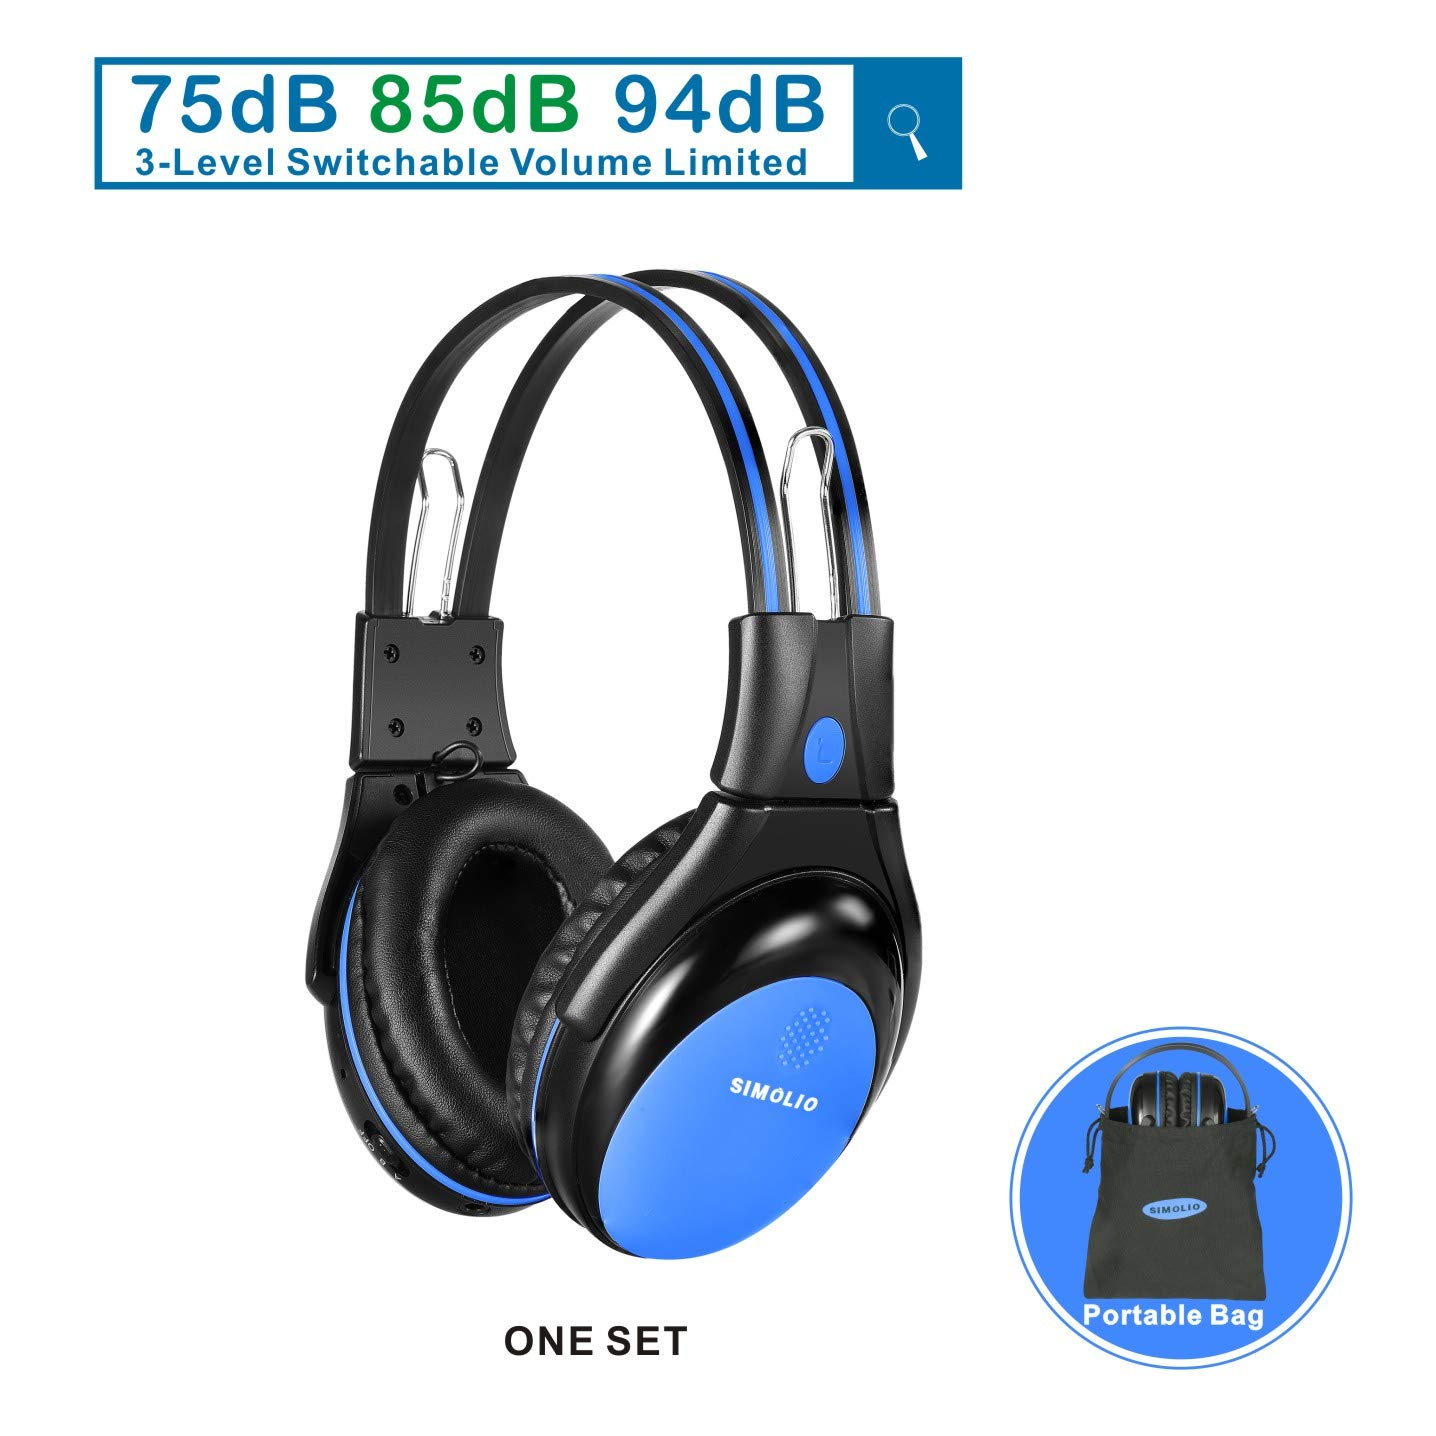 1 Pack of Wireless Kids Headphones with 3 Levels Volume Limiting, in Car IR Headphones with Sharing Jack, IR Wireless Headsets for Car DVD/TV, 2 Channel Foldable Car DVD Headphones, Blue